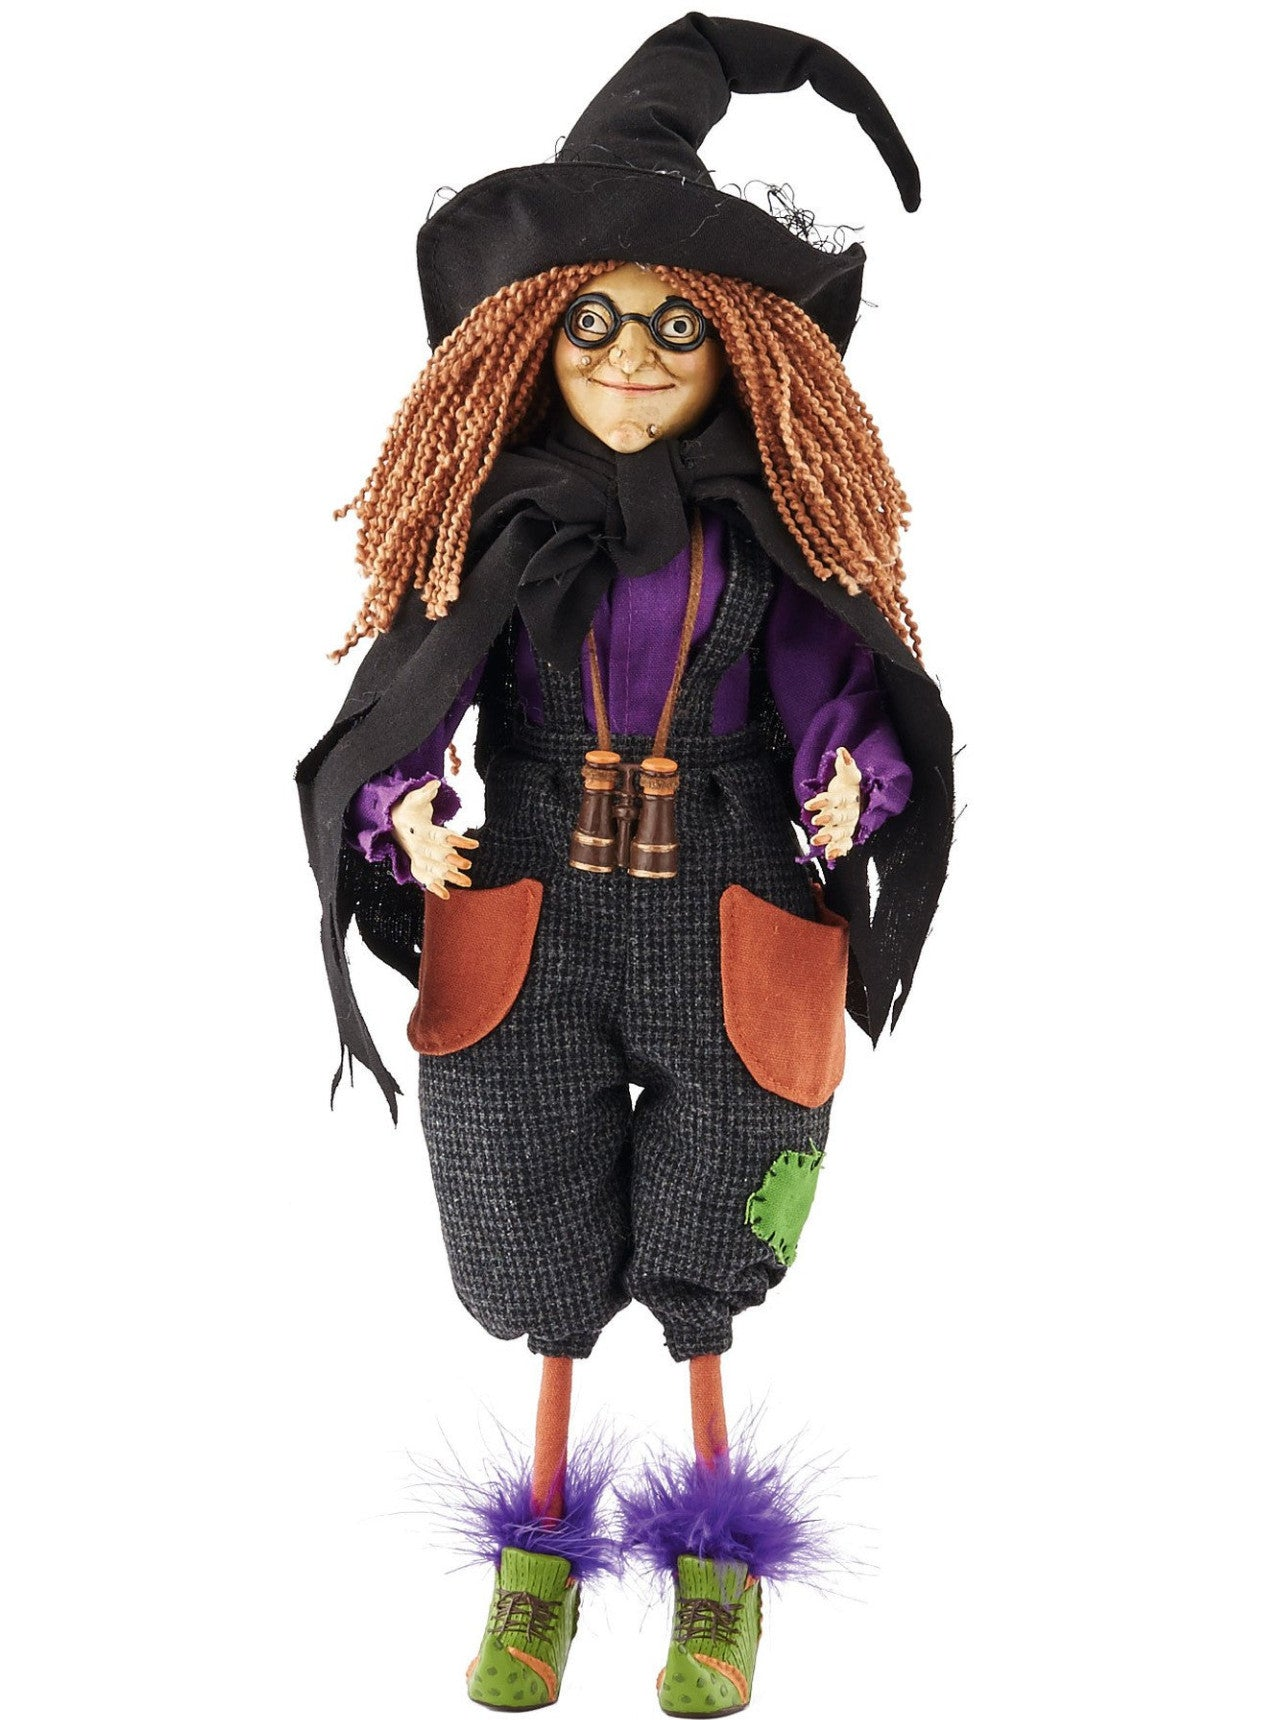 Tilly the Tower Witch Figurine by Department 56